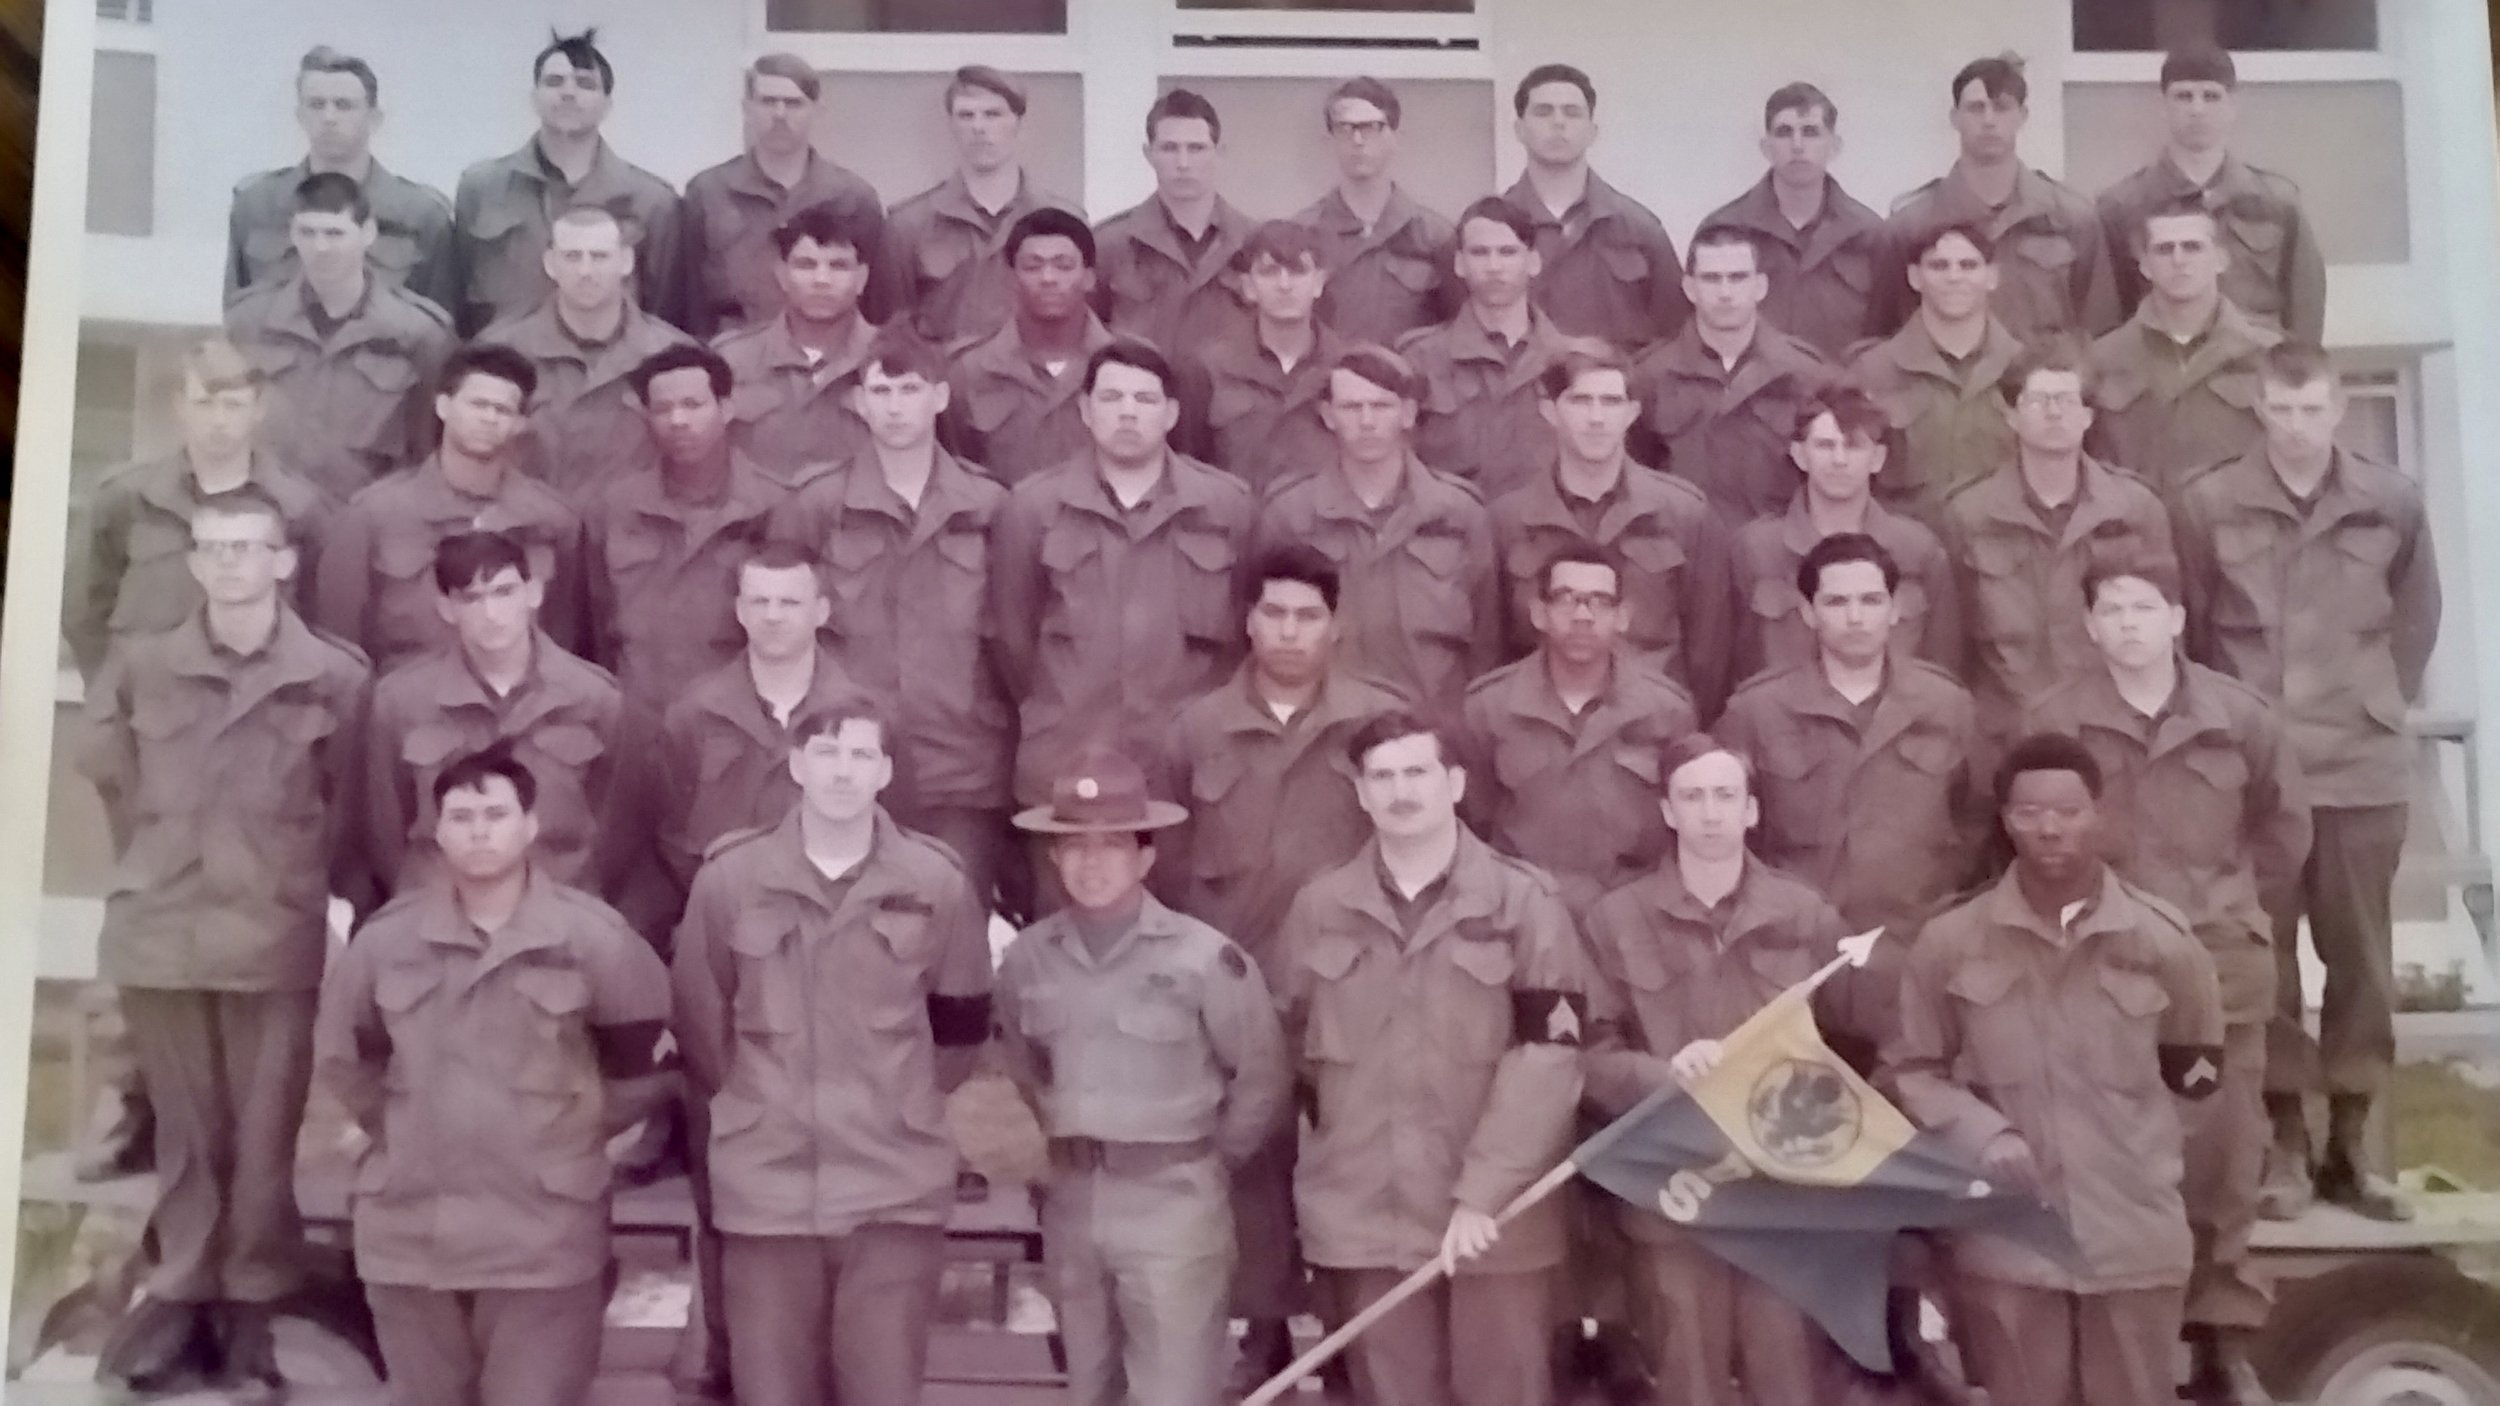 Nolan Fletcher second from the top on the right in basic training circa 1971 at Fort Ord in California.